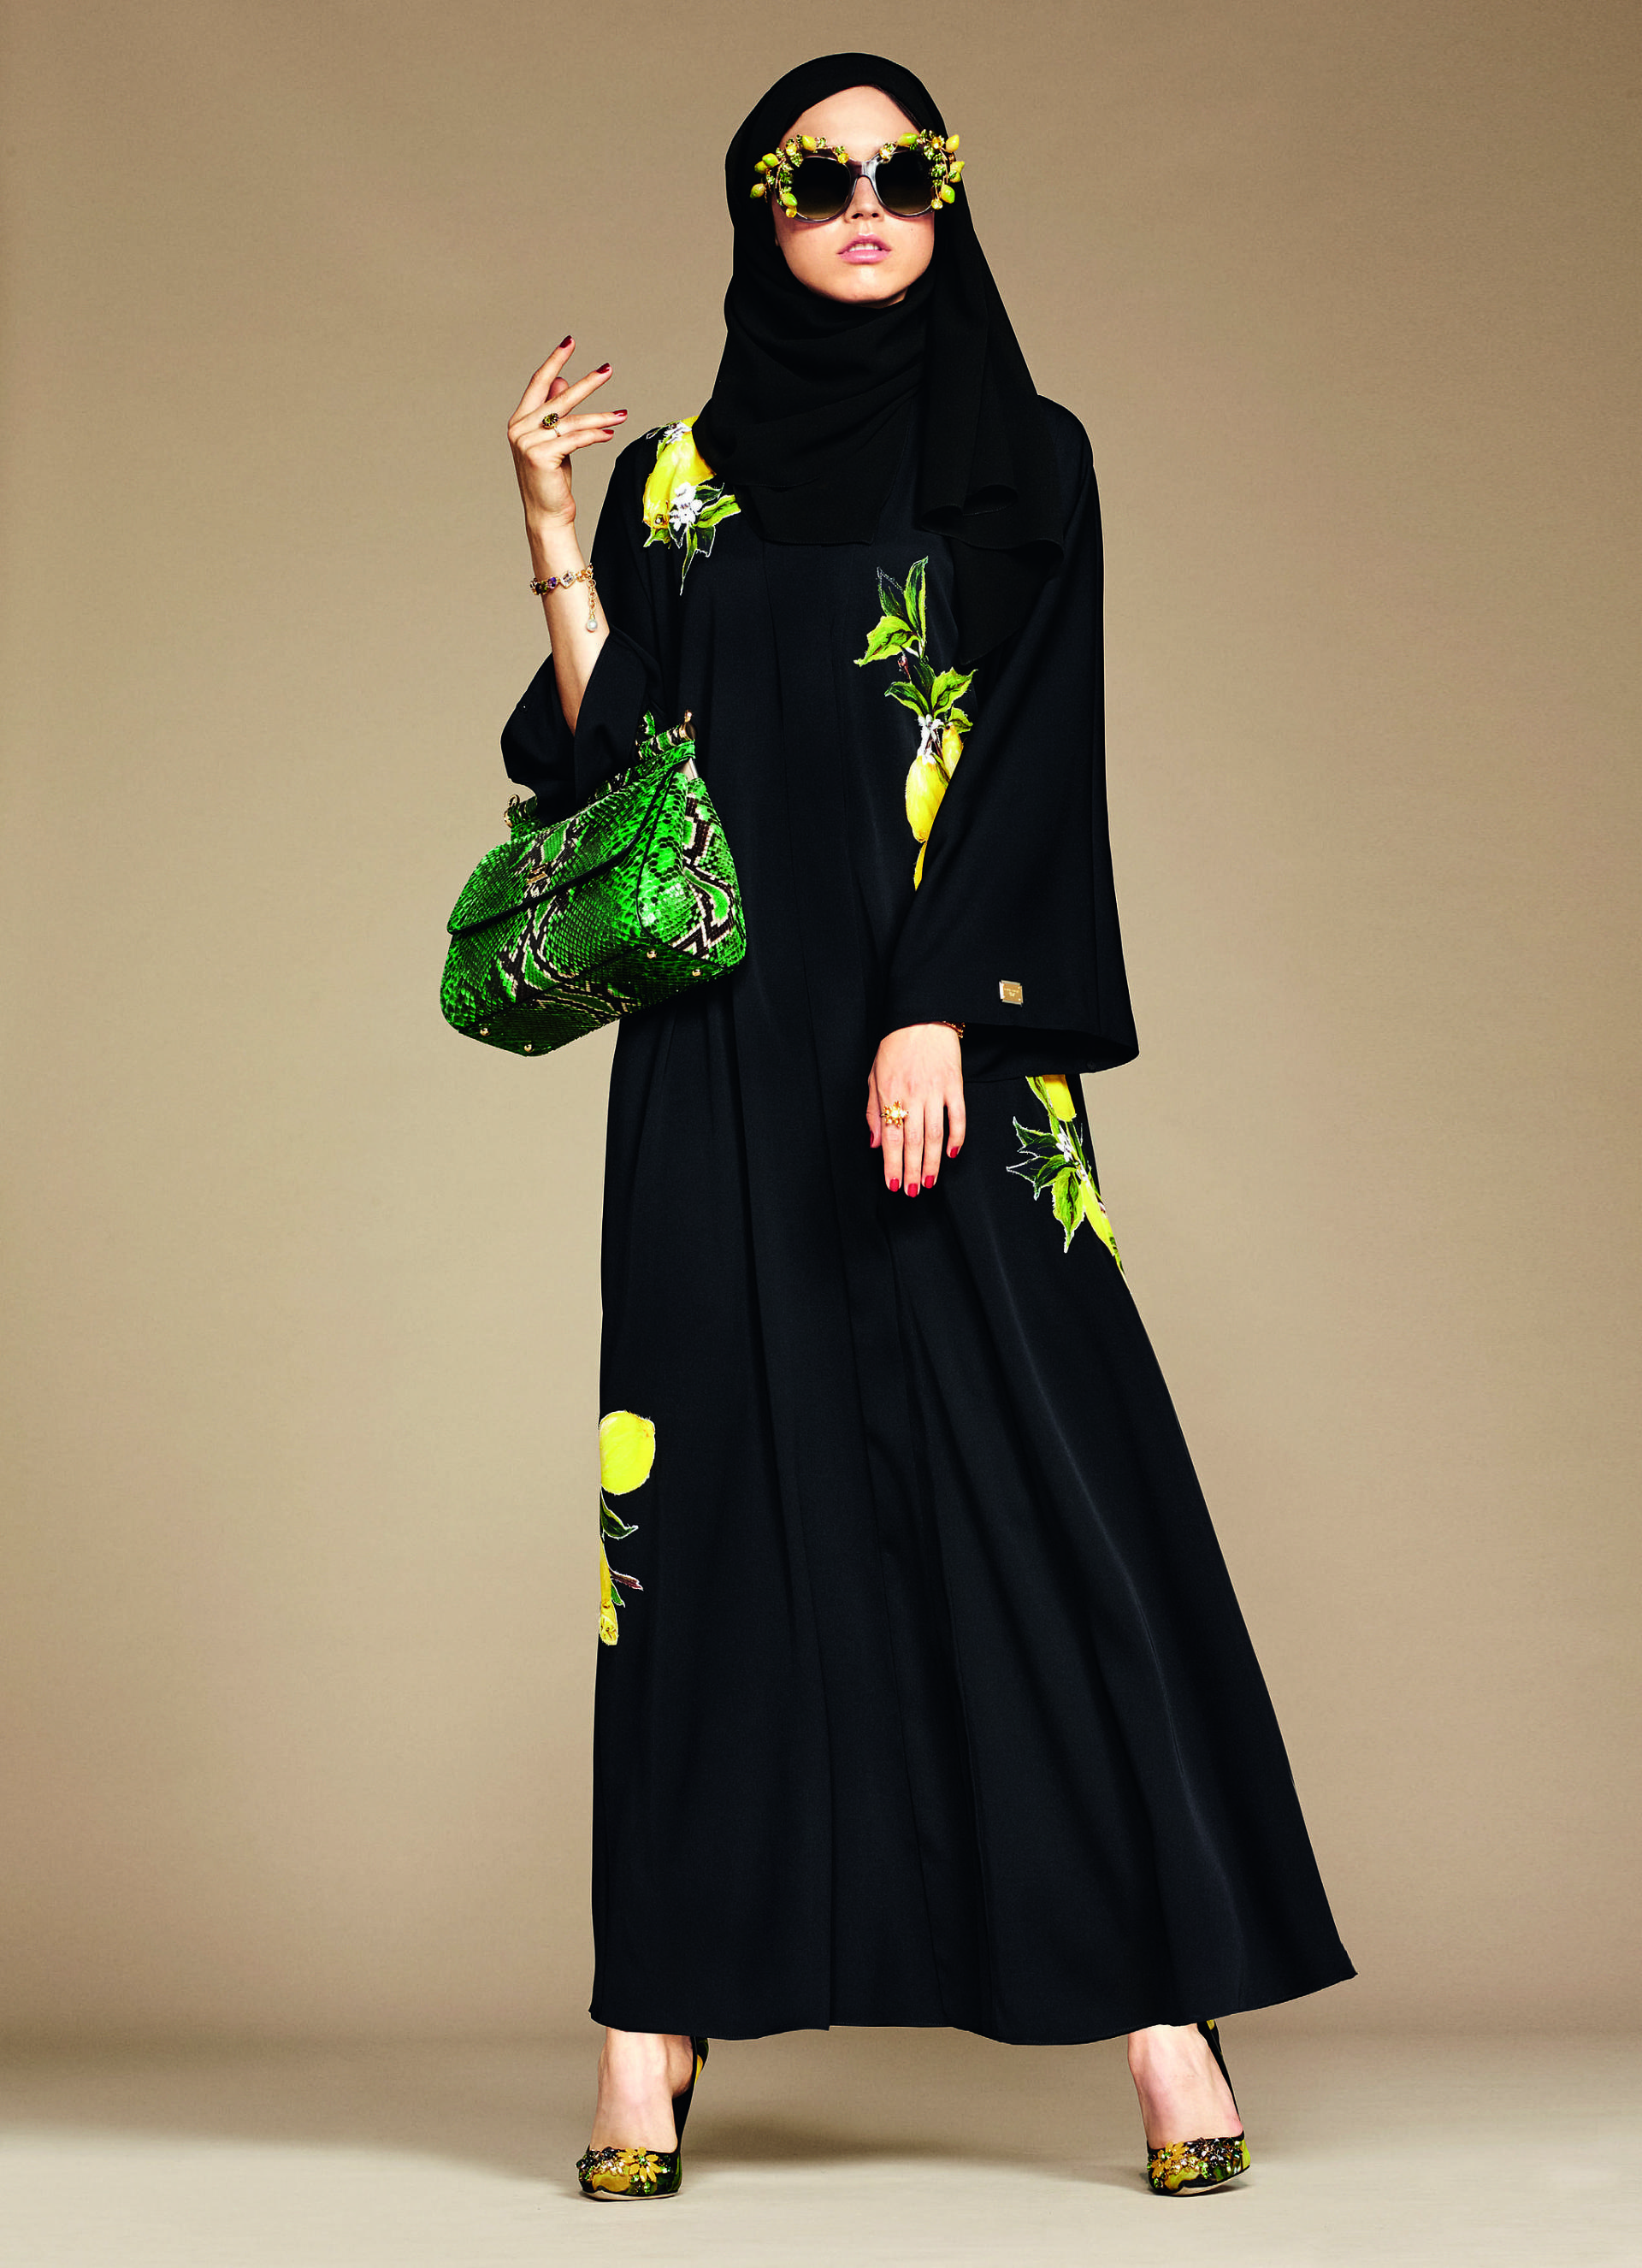 Over_Exposed_Dolce-Gabbana-Hijab-Abaya-Collection14